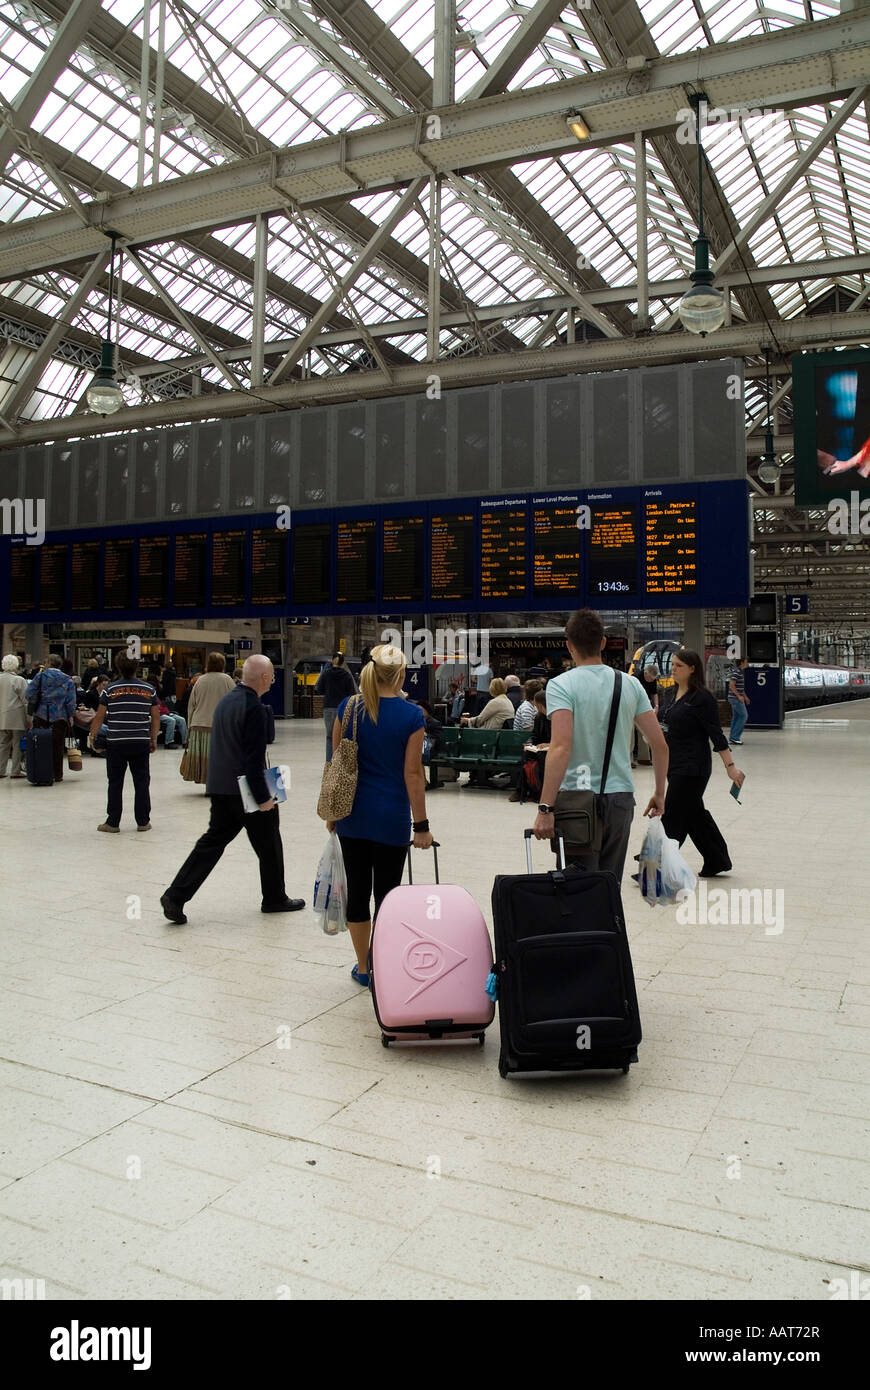 dh  CENTRAL STATION GLASGOW Passenger couple with suitcases looking at train timetable board - Stock Image